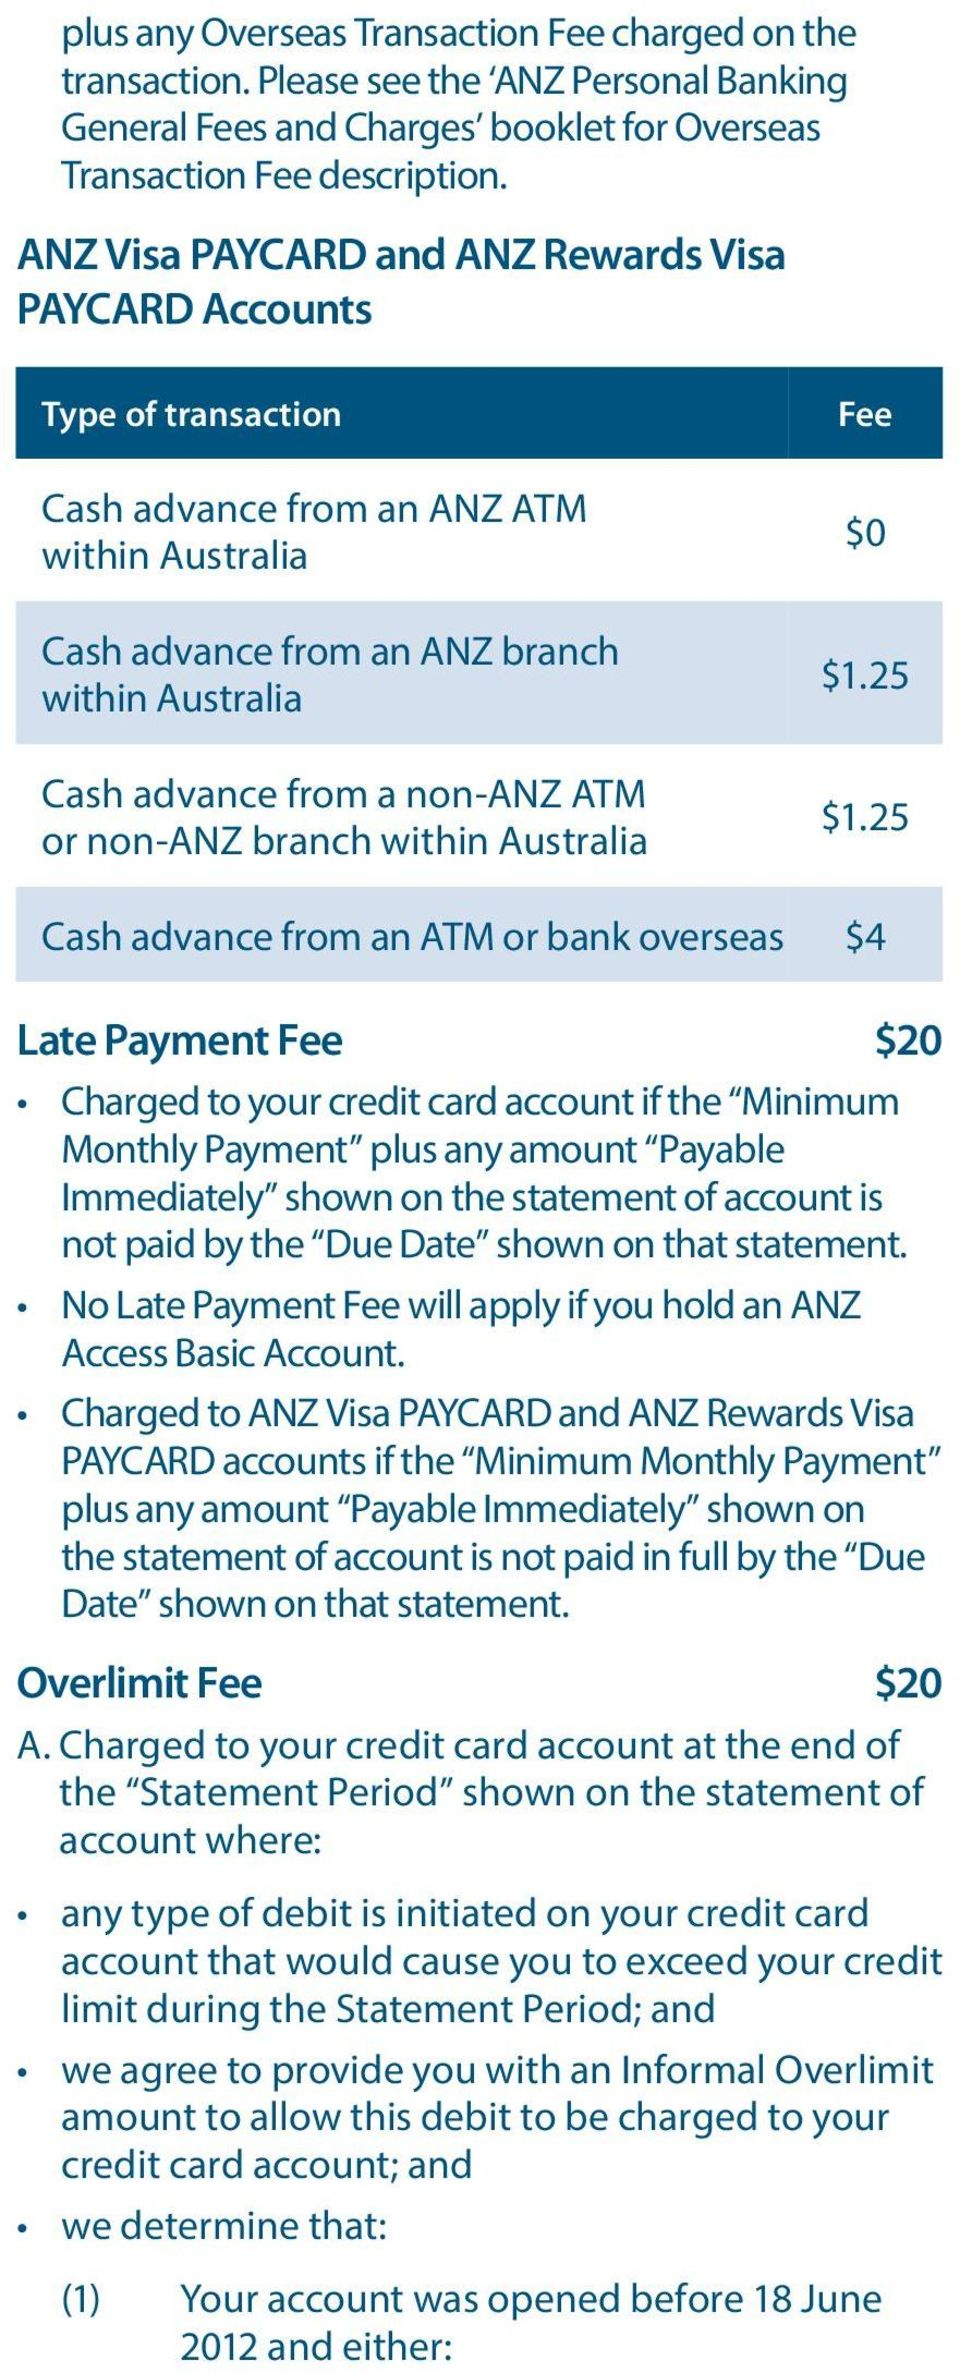 ATM or non-anz branch within Australia Fee $0 $1.25 $1.